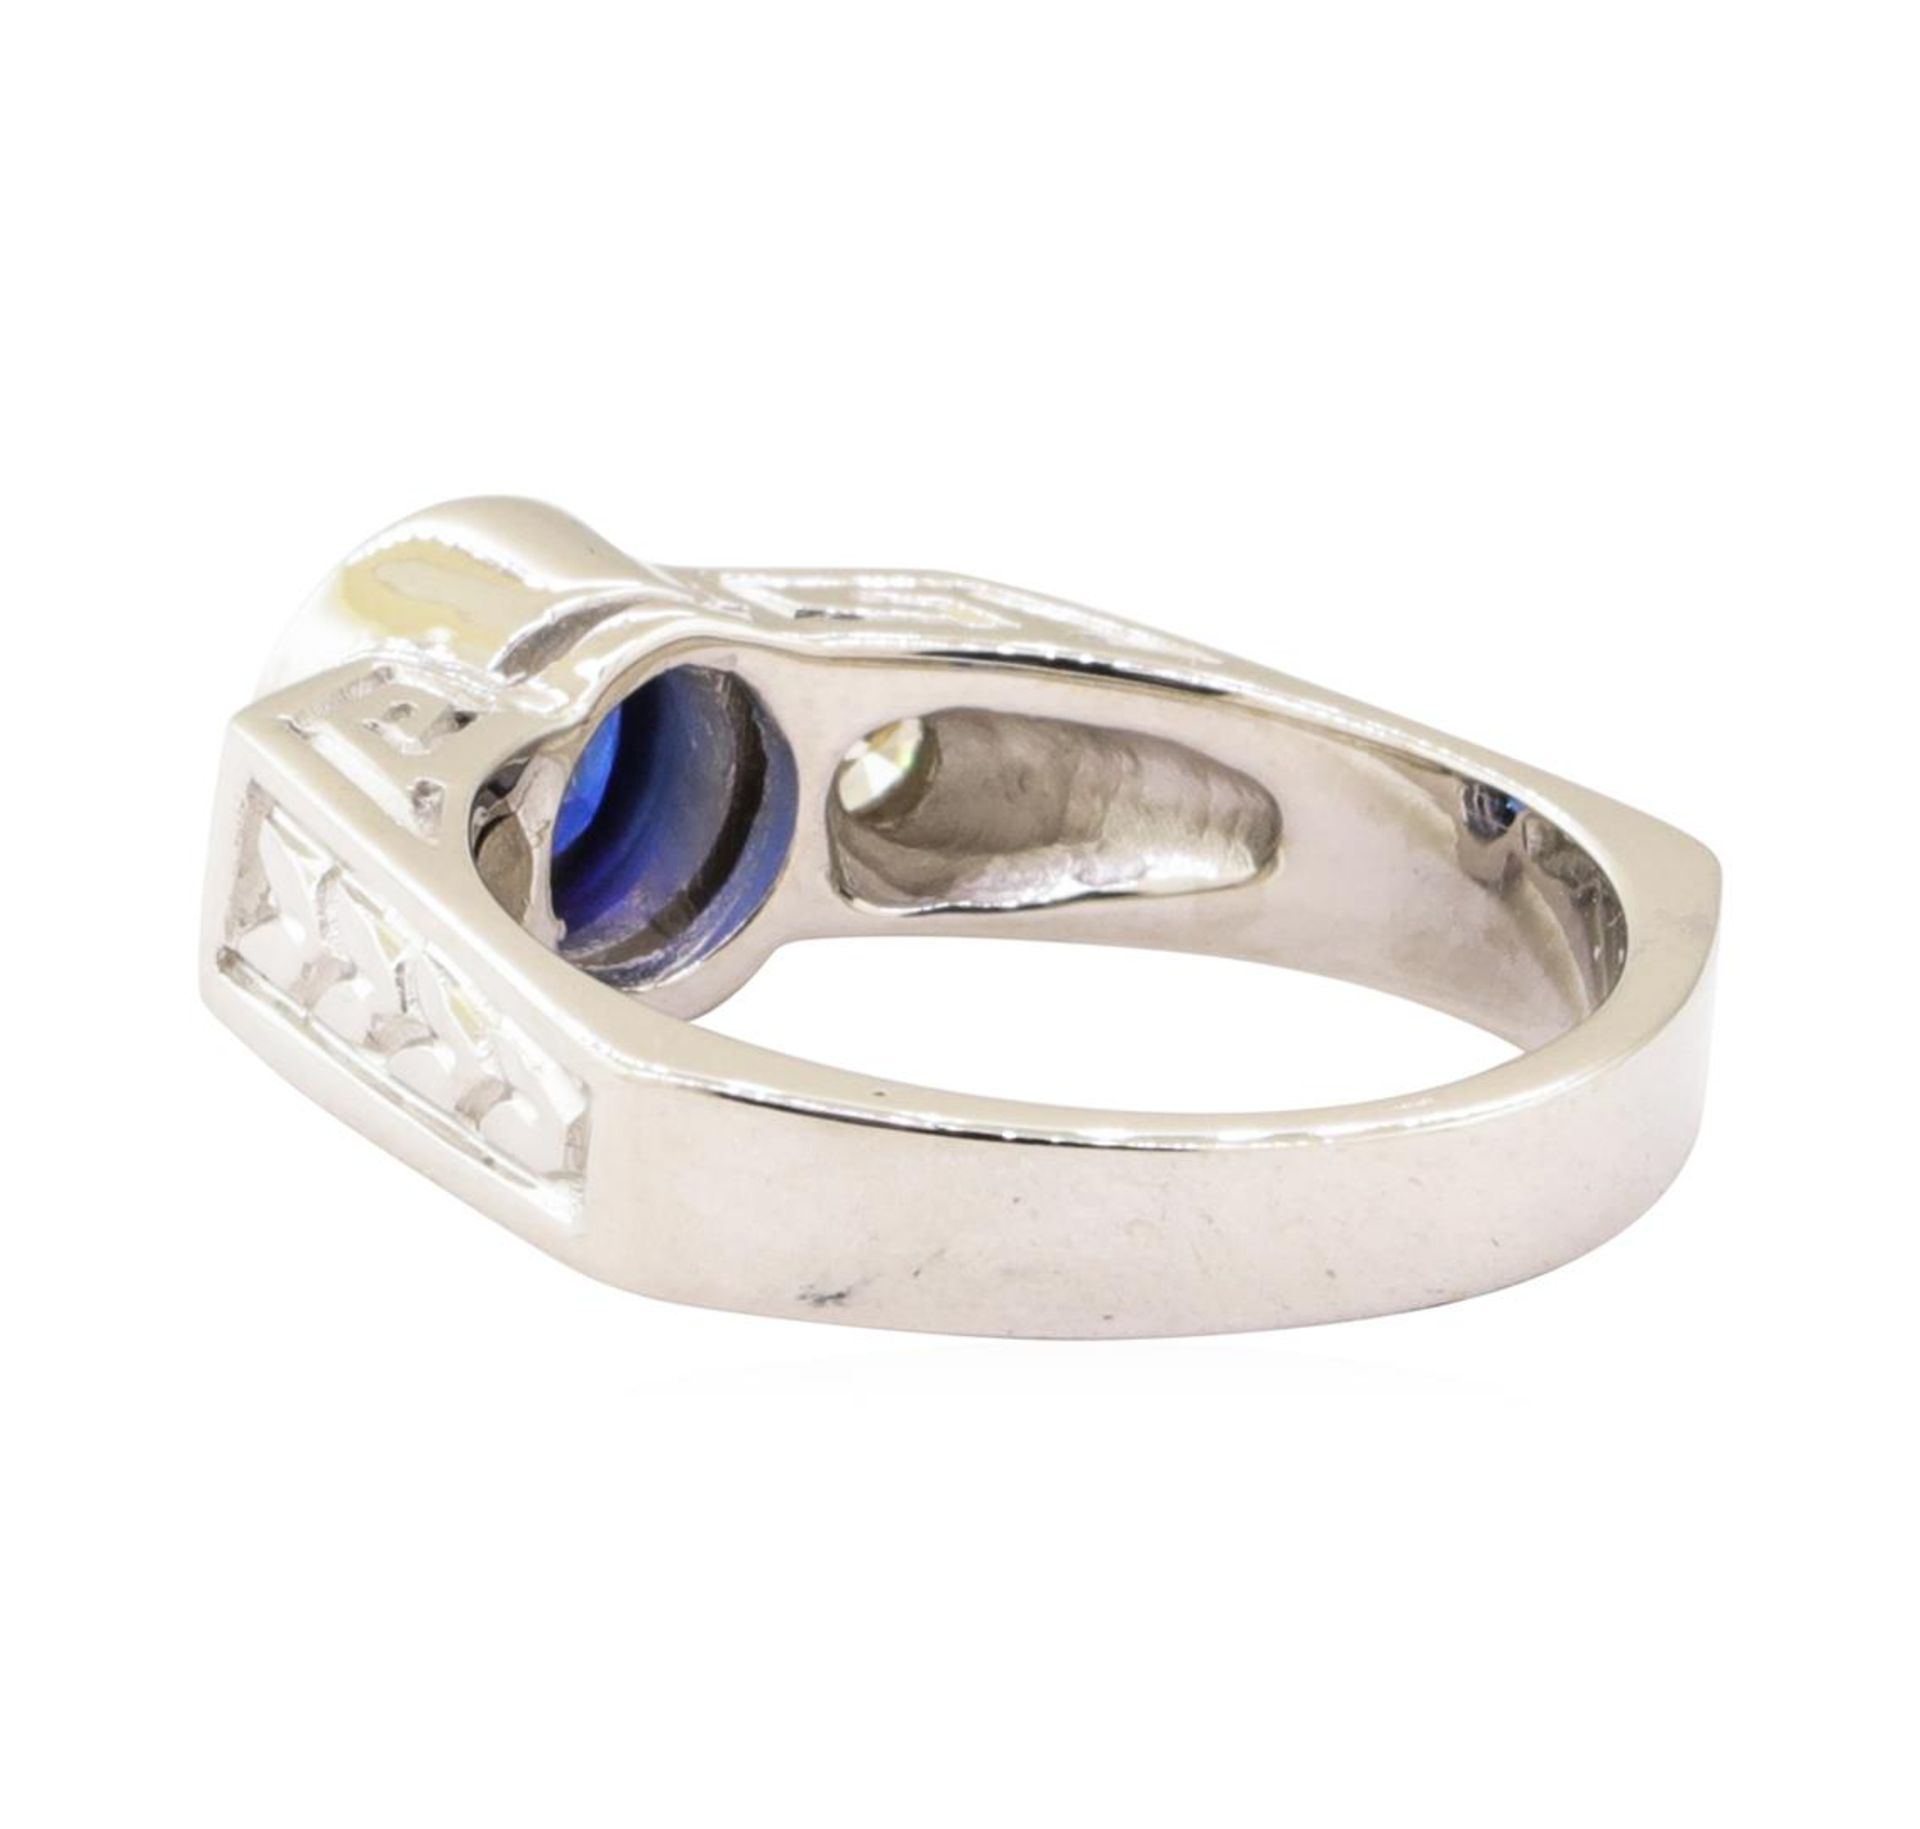 1.60 ctw Blue Sapphire And Diamond Ring - 14KT White Gold - Image 3 of 5